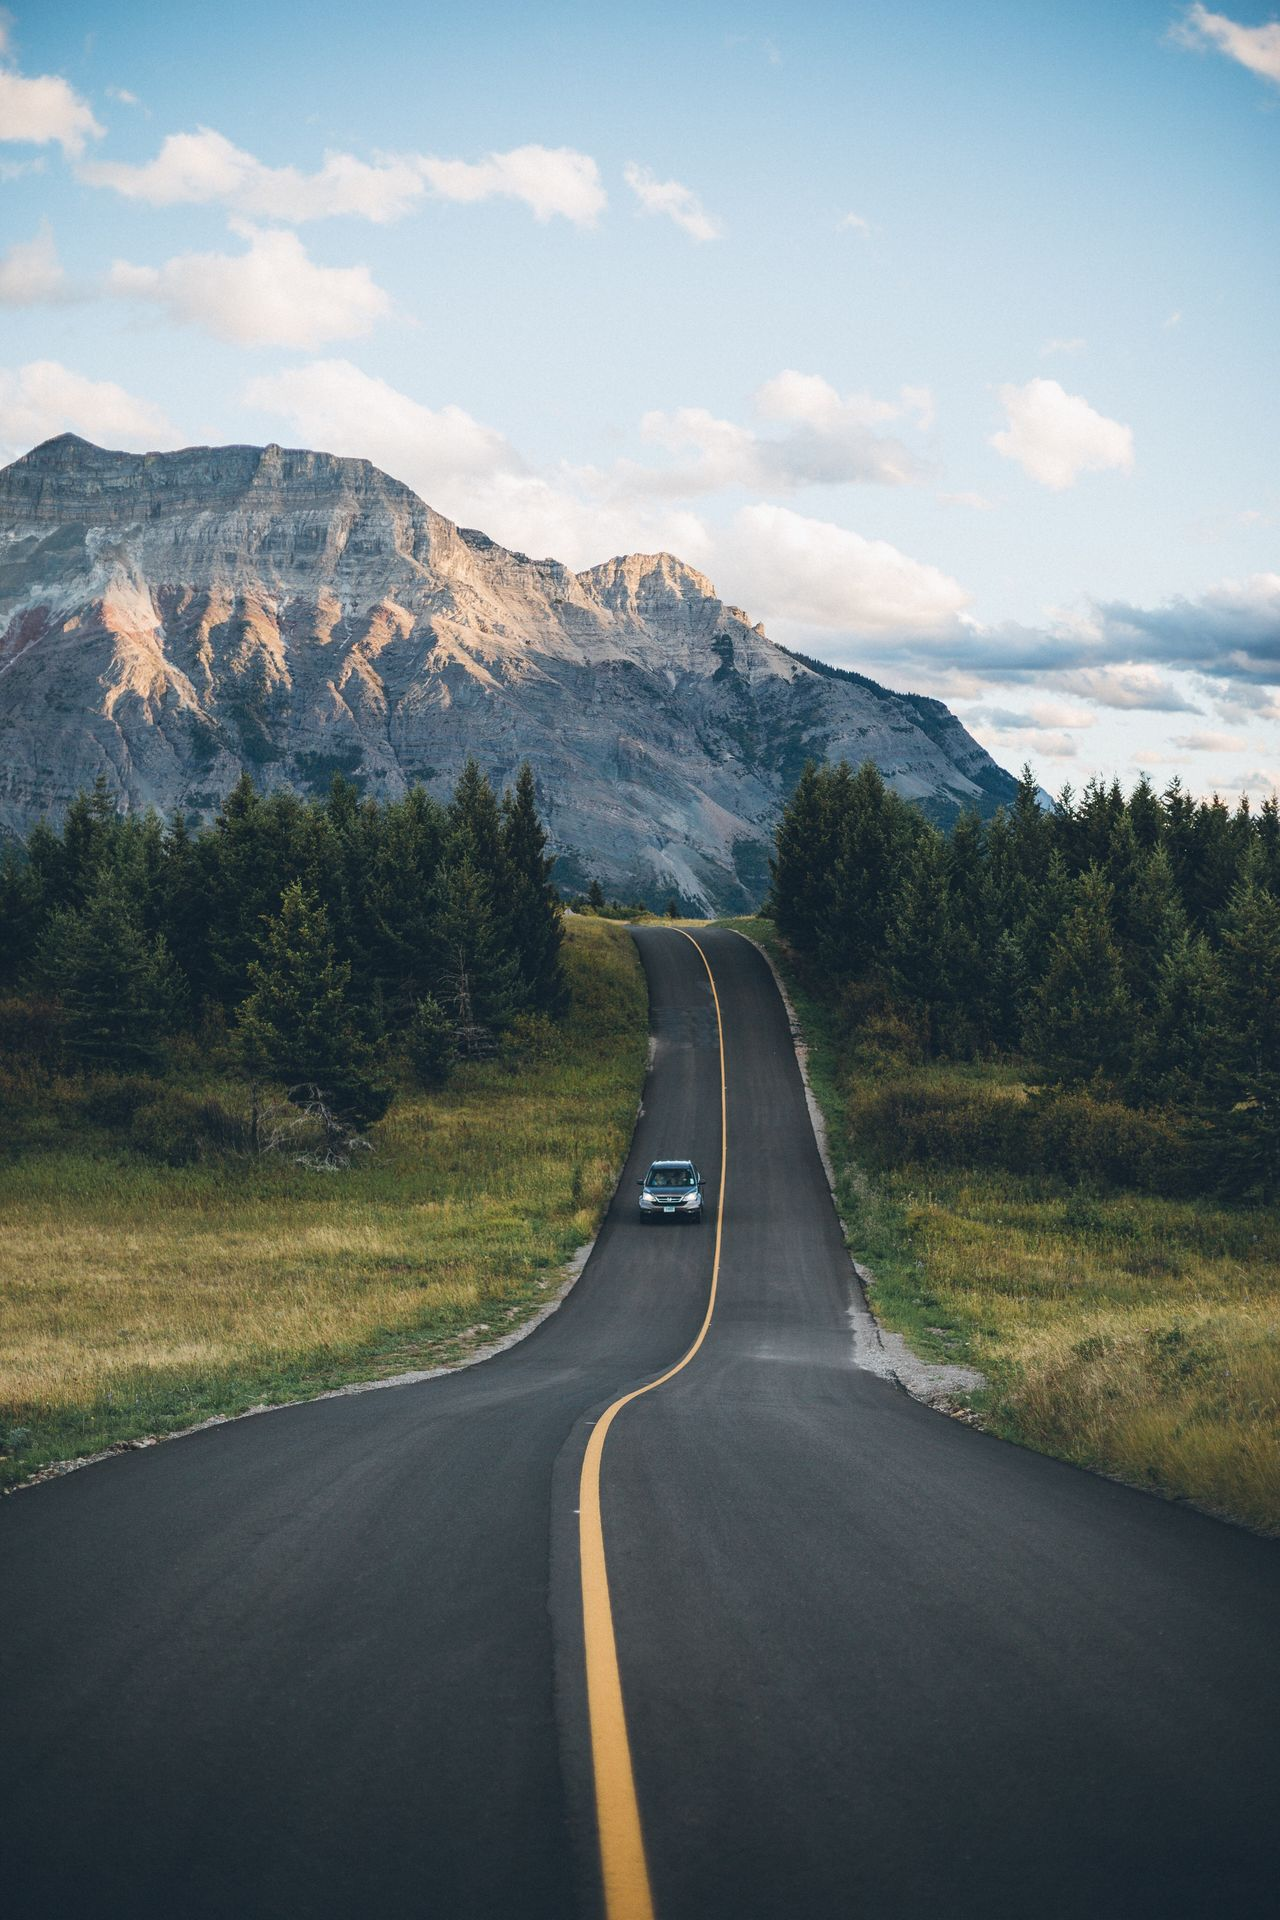 Curvy roads Mountain Road The Way Forward Mountain Range Nature Beauty In Nature Sky Landscape Scenics No People Day Transportation Outdoors Winding Road Canada